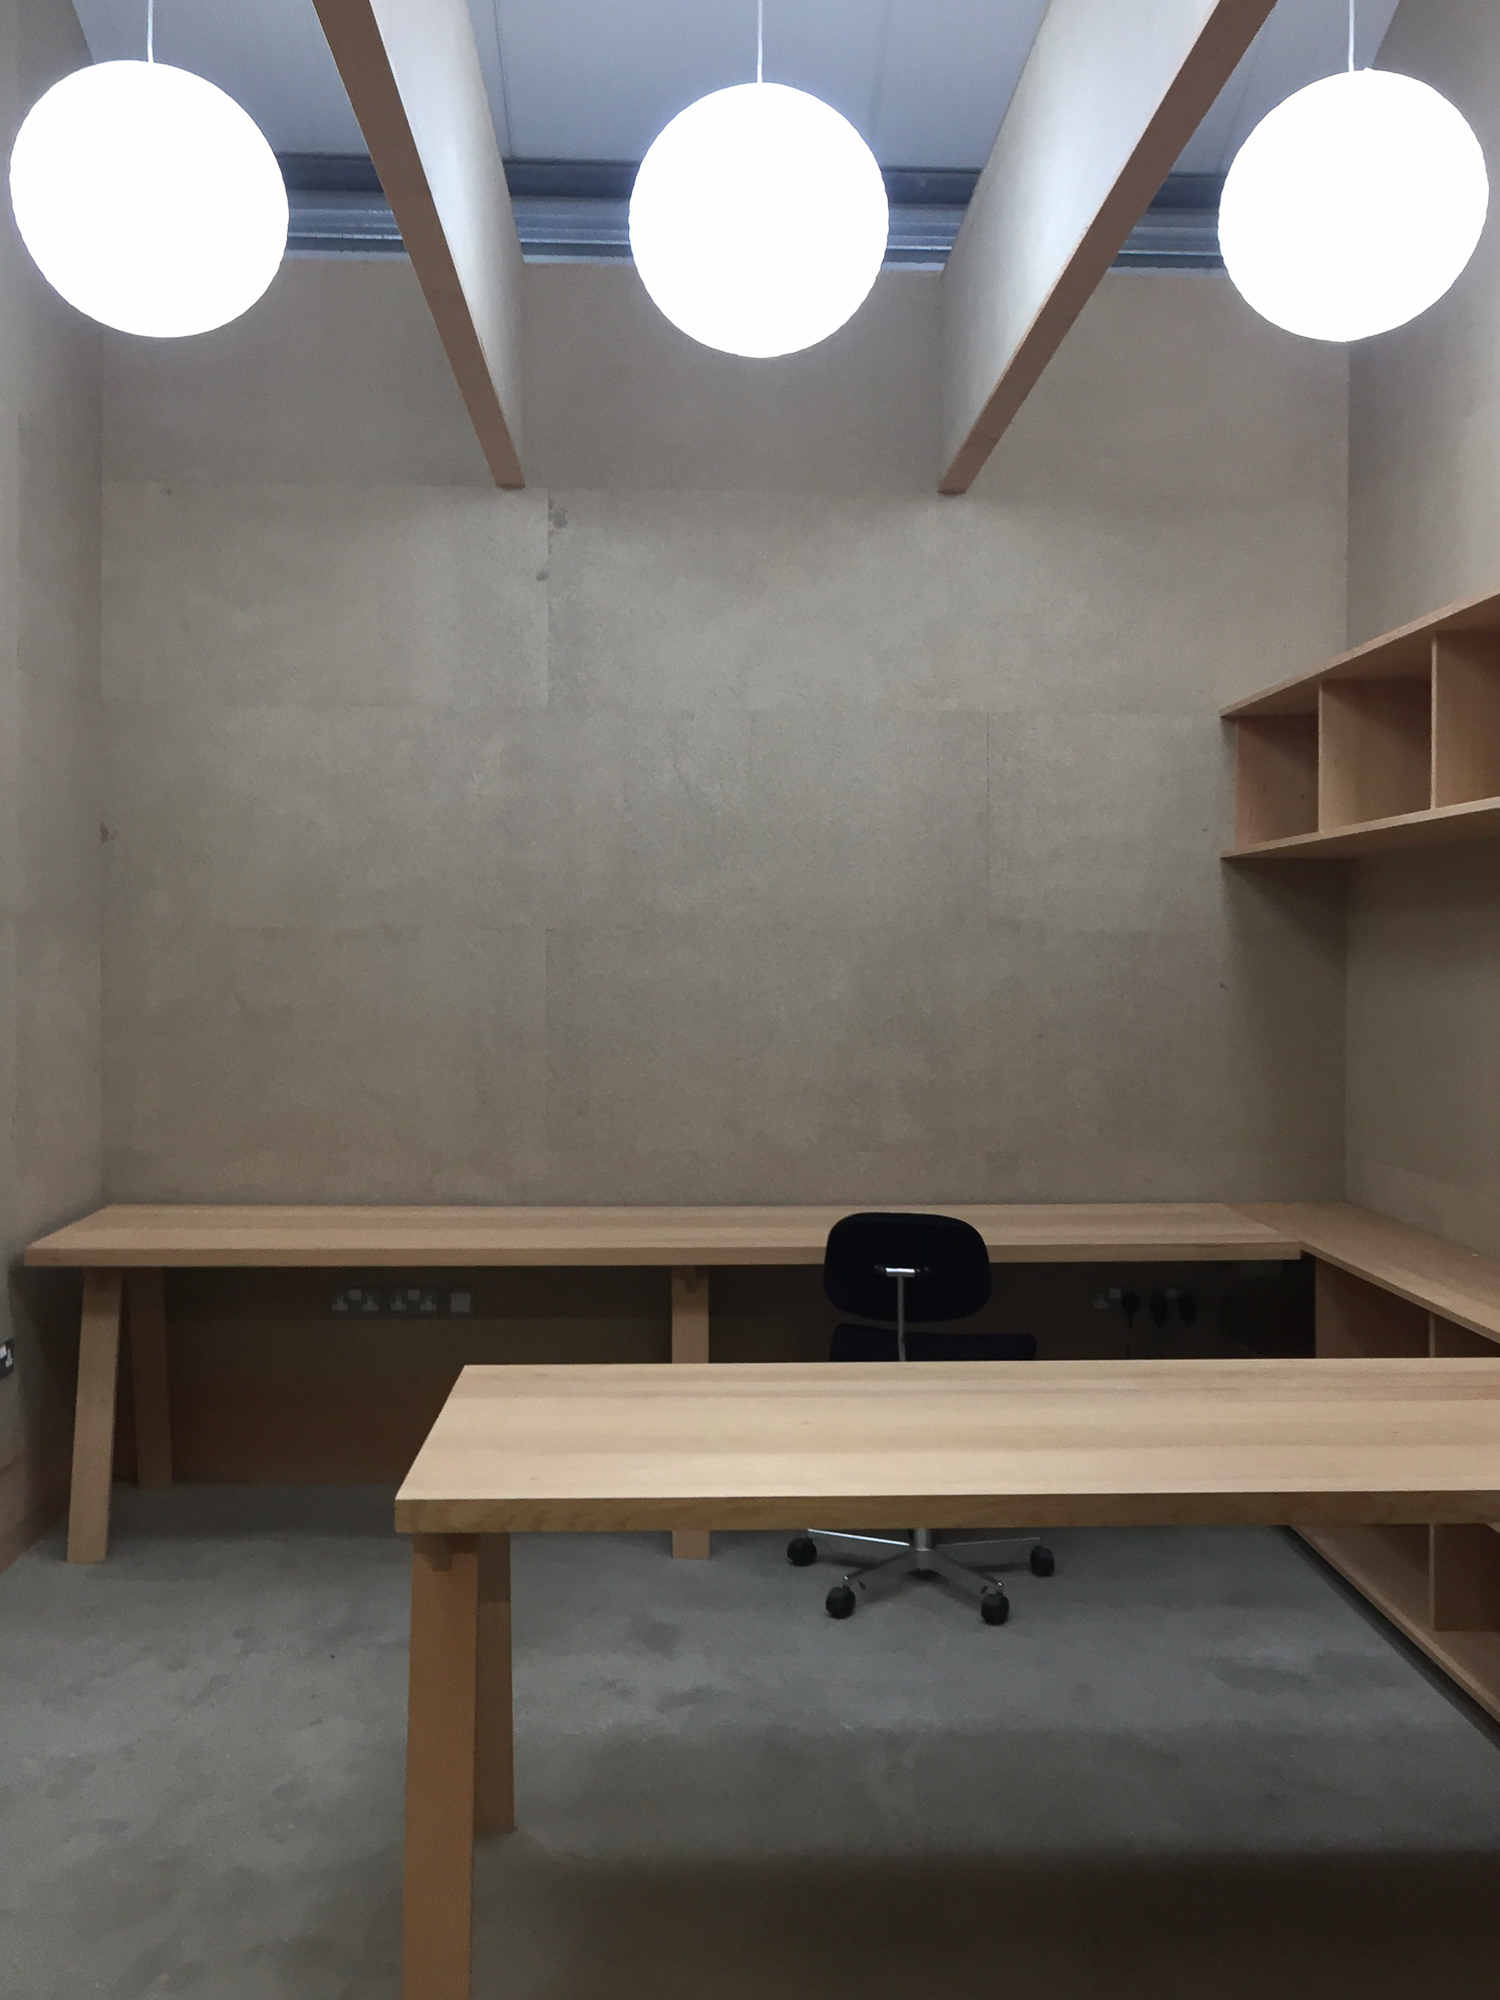 Niwaki offices and showroom  December 2016  The offices and showroom we designed for Japanese tool suppler Niwaki in Wiltshire are nearing completion. Vertical grain Douglas Fir timber and T&G chipboard panels.